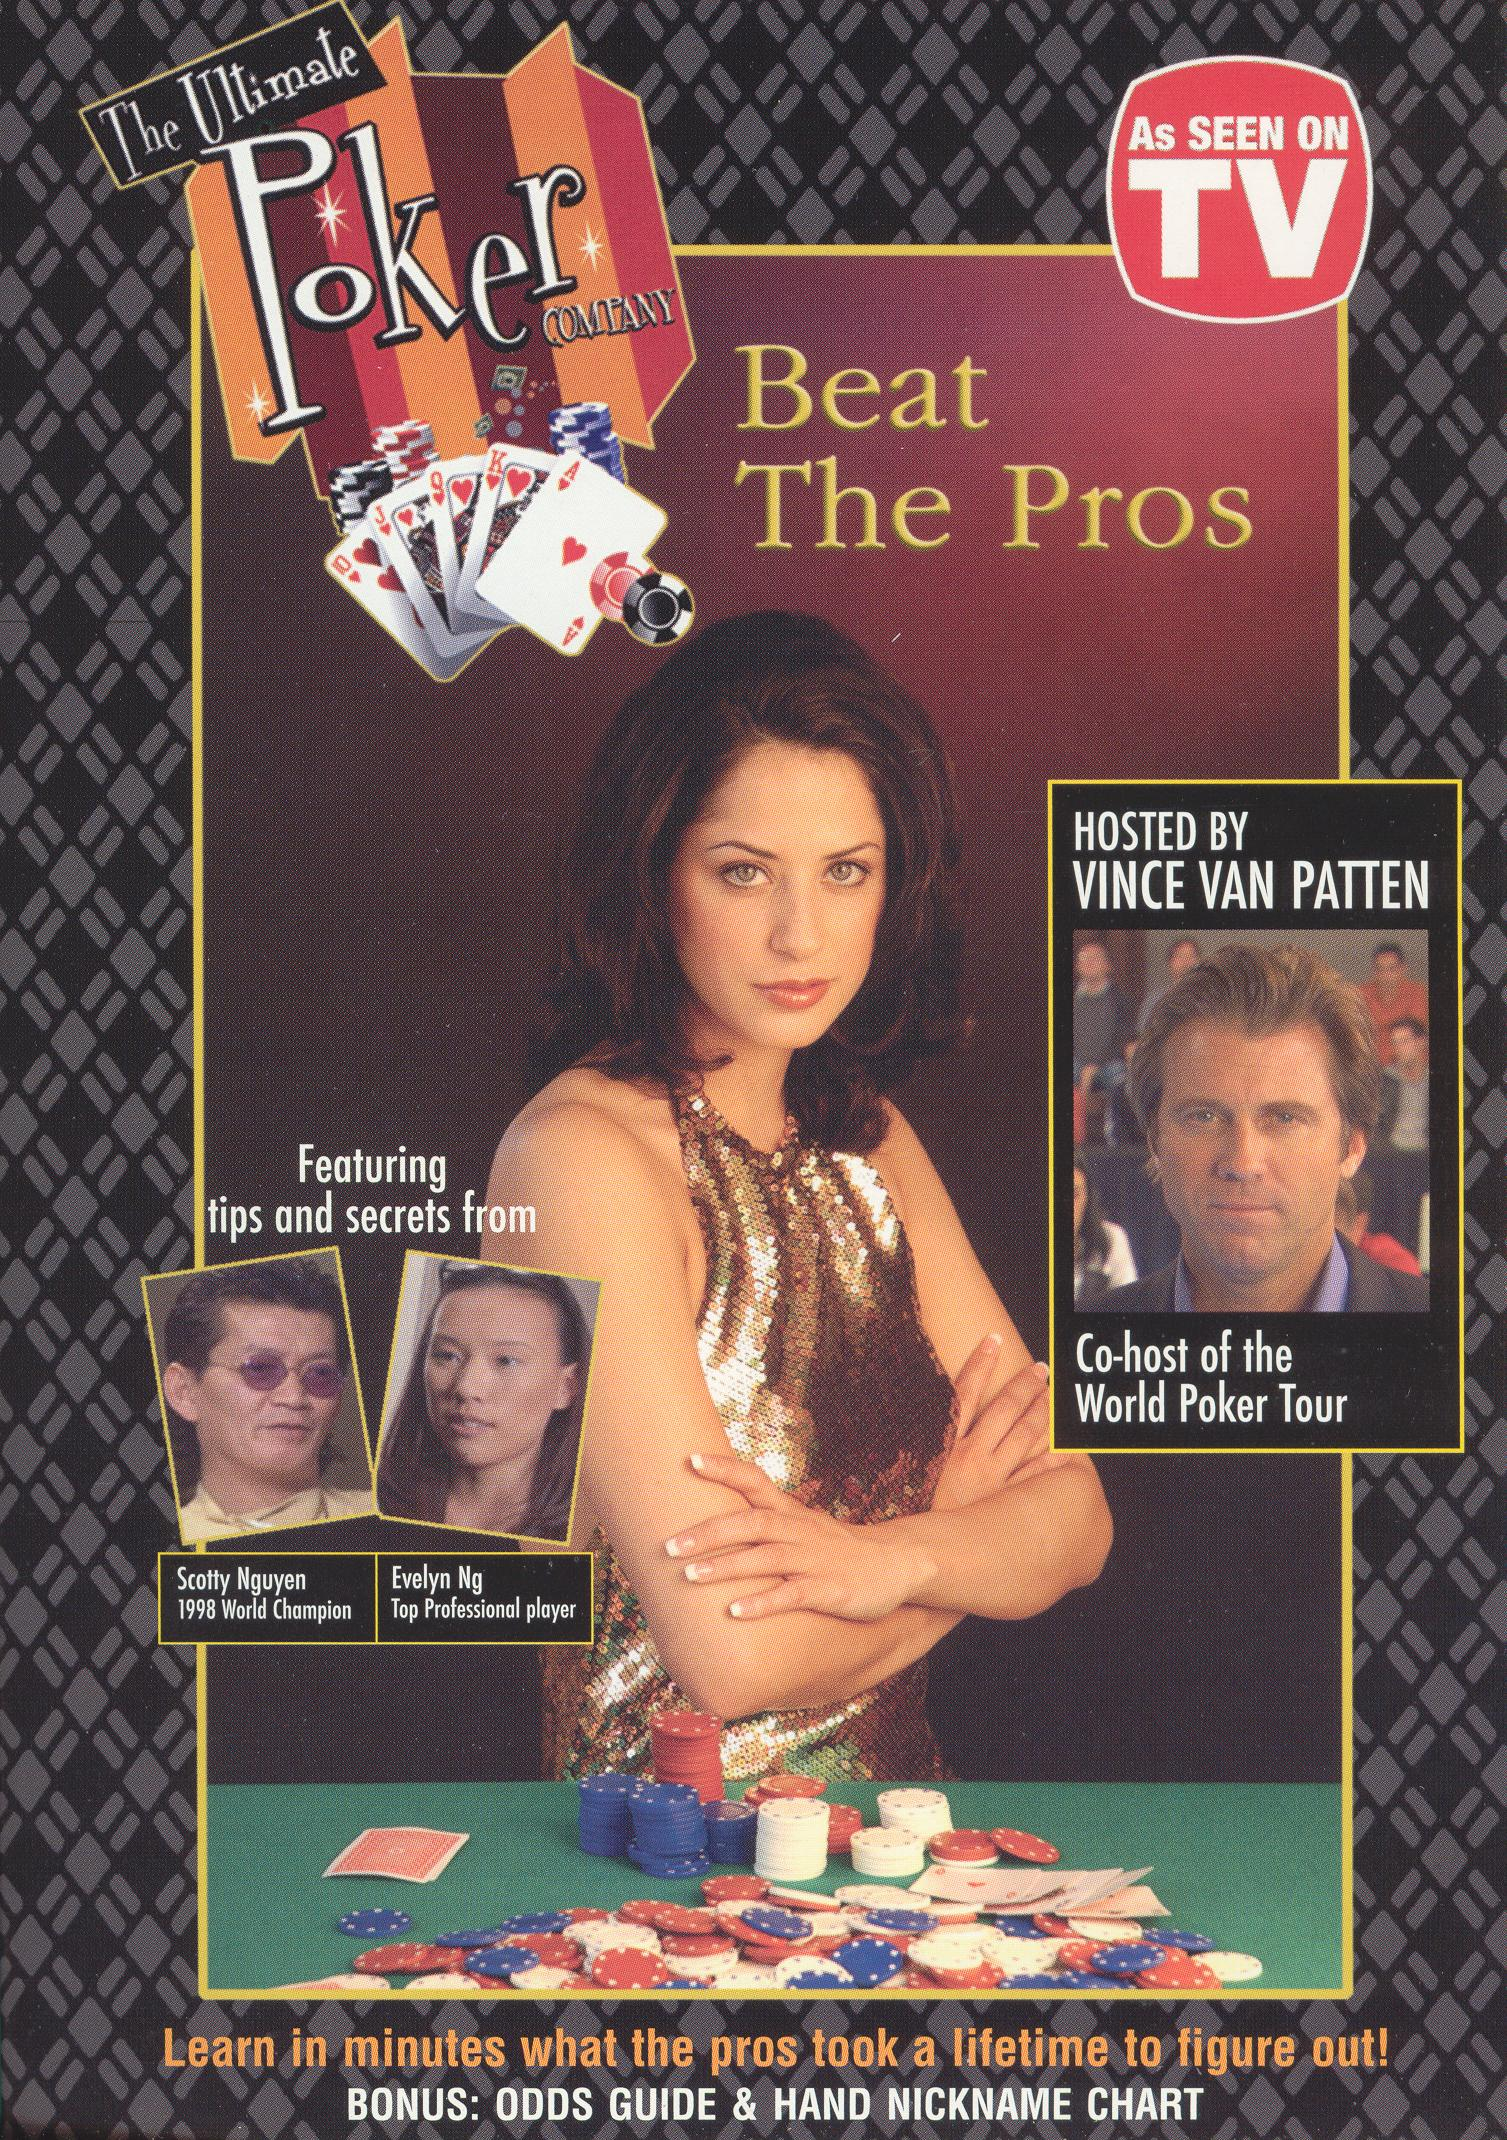 Ultimate Poker's Beat the Pros